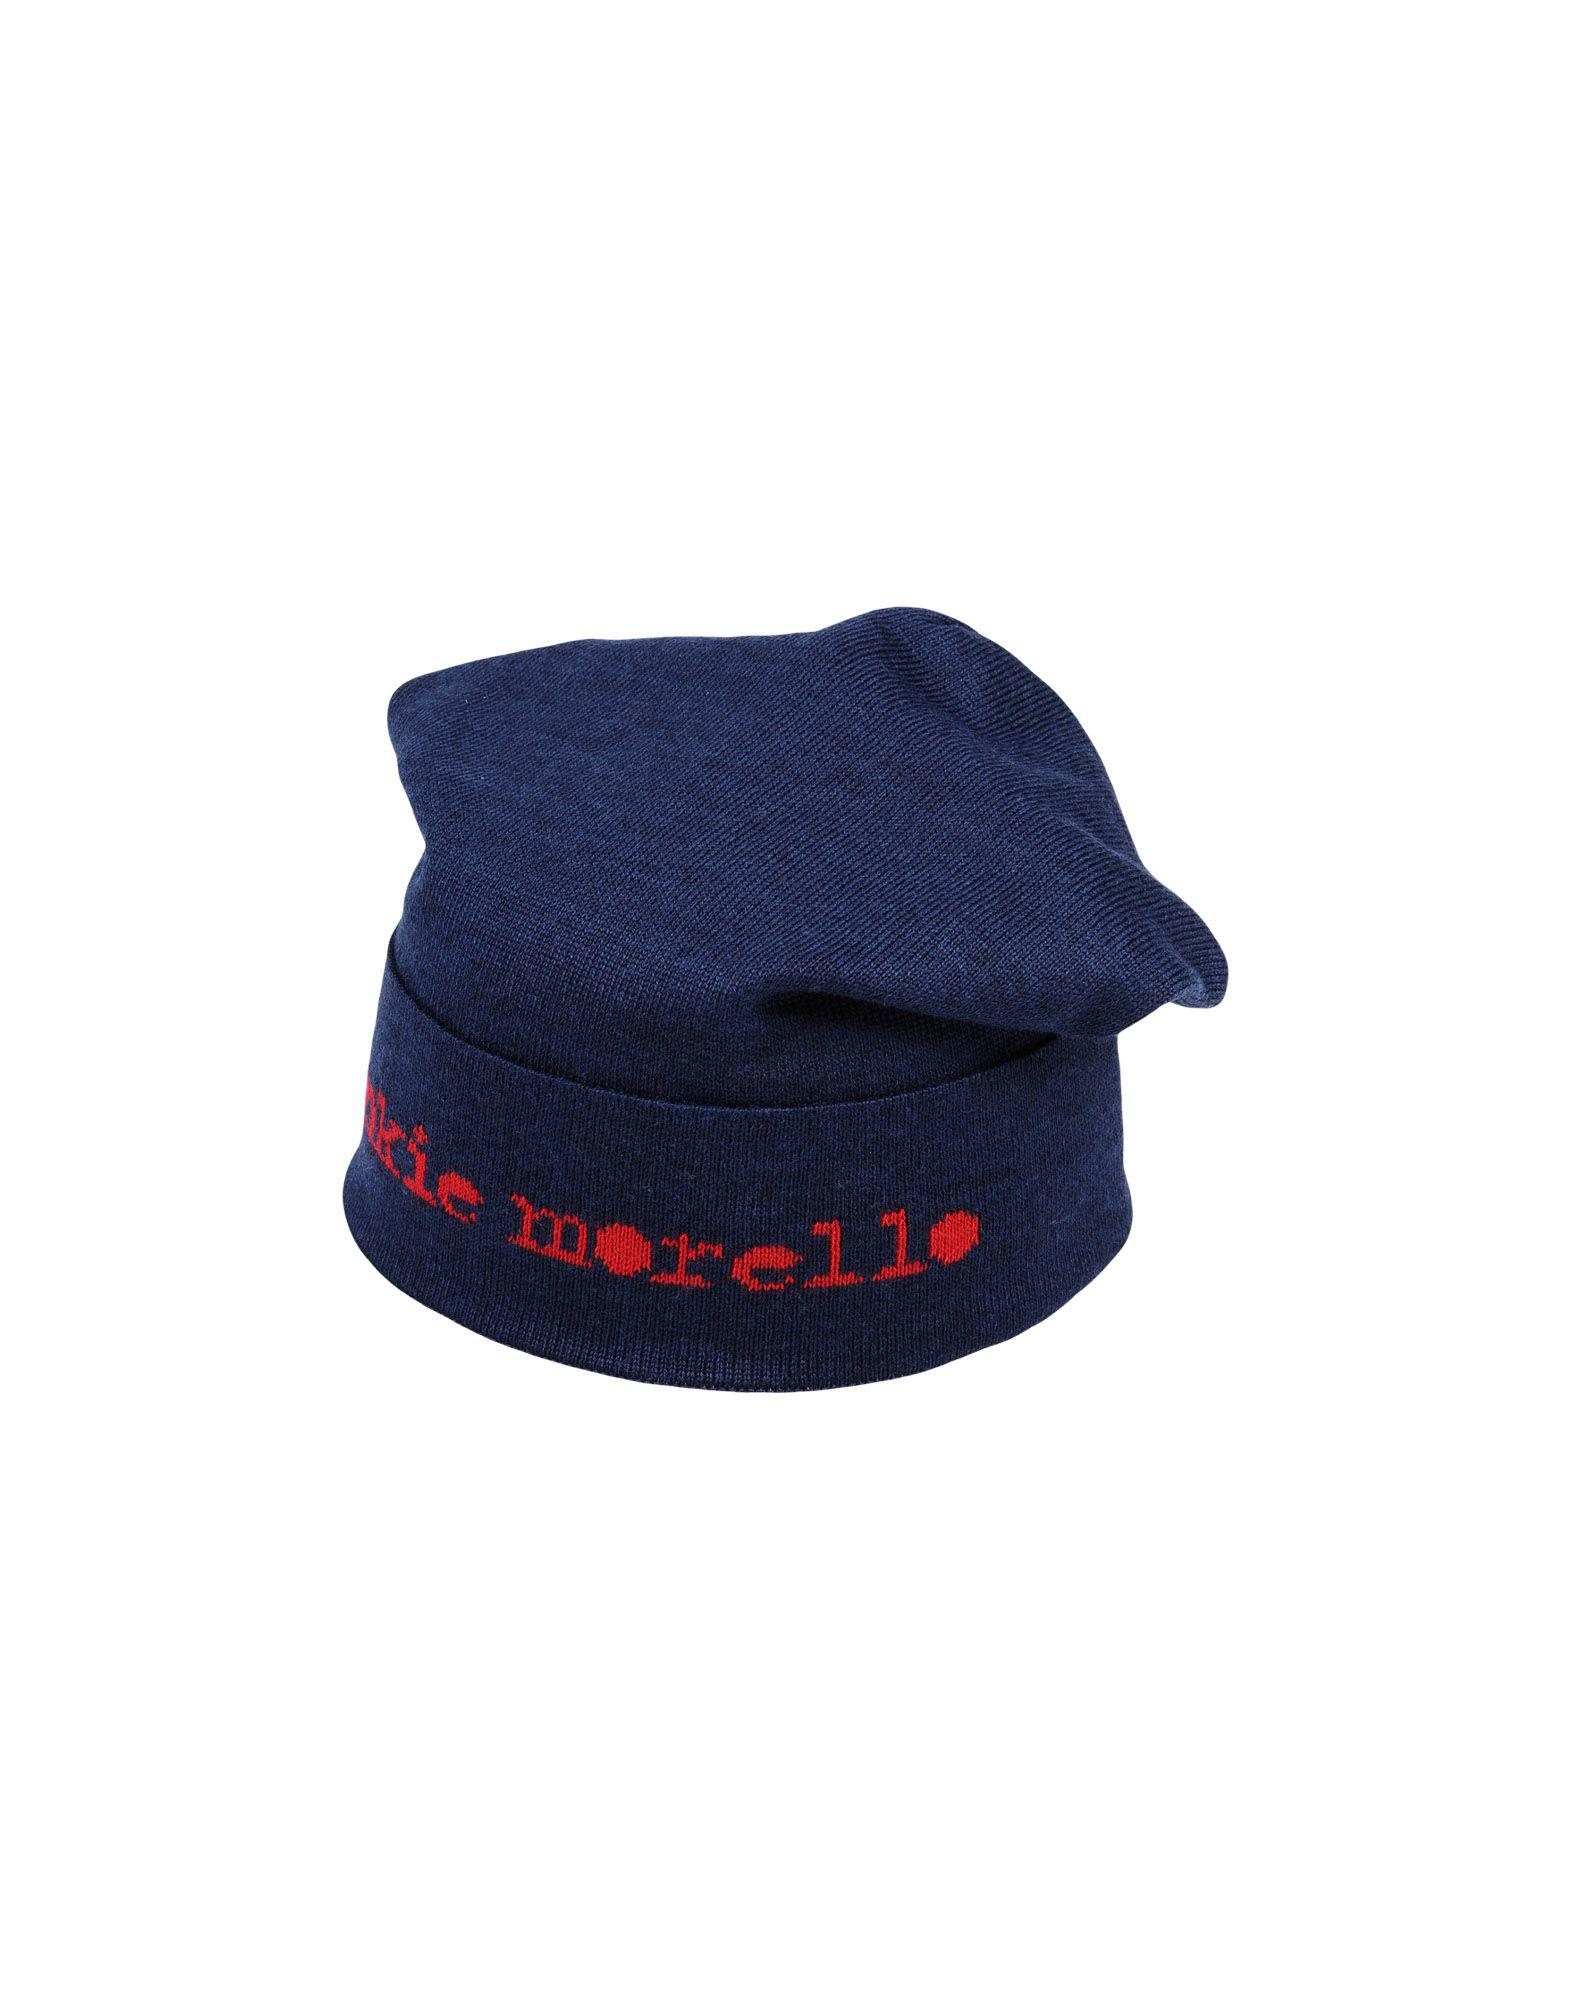 Lyst - Frankie Morello Hat in Blue for Men ed20a8522bde